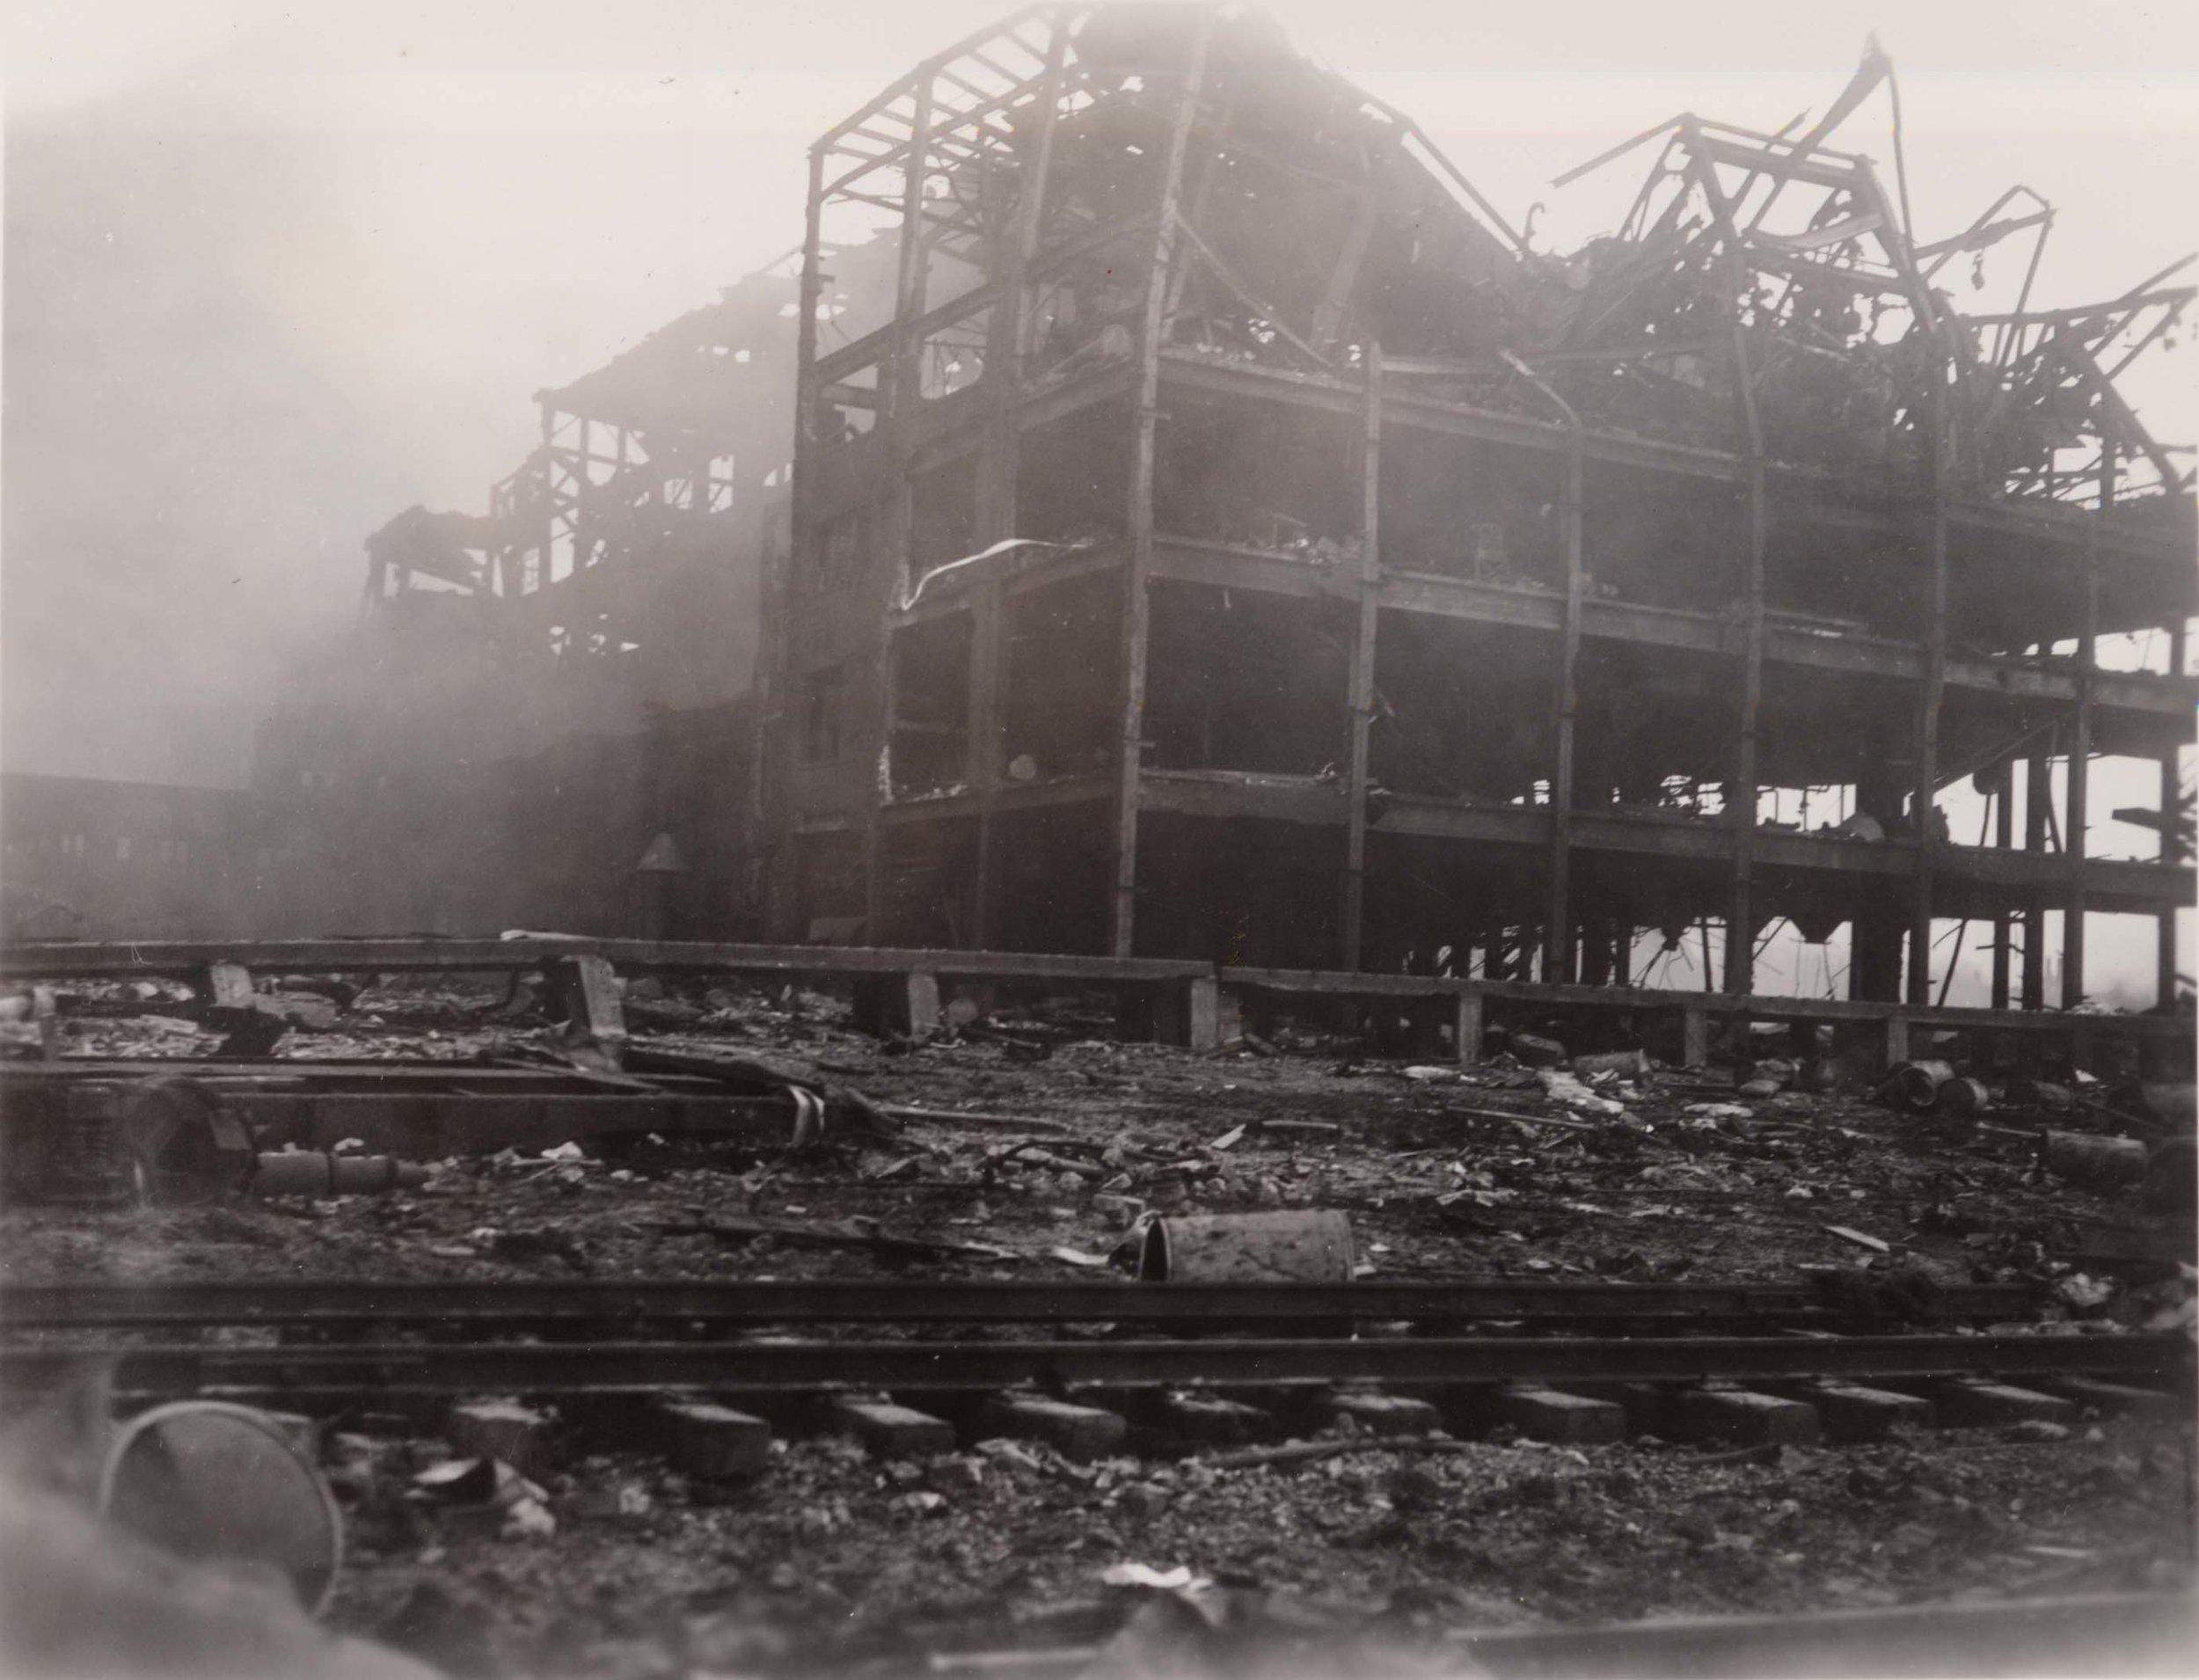 Only the steel frame of this five-story rubber factory, located next to Texas City's dockyard, remains after the massive explosion on April 16, 1947. When the SS Grandcamp's cargo of 2,300 tons of ammonium nitrate exploded, it set off a chain reaction of events, including a 15-foot tidal wave that flooded the surrounding area. Windows were shattered in Houston, 75 kilometres to the north, and people in Louisiana felt the shock 400 kilometres away. (special collections, u of houston libraries)